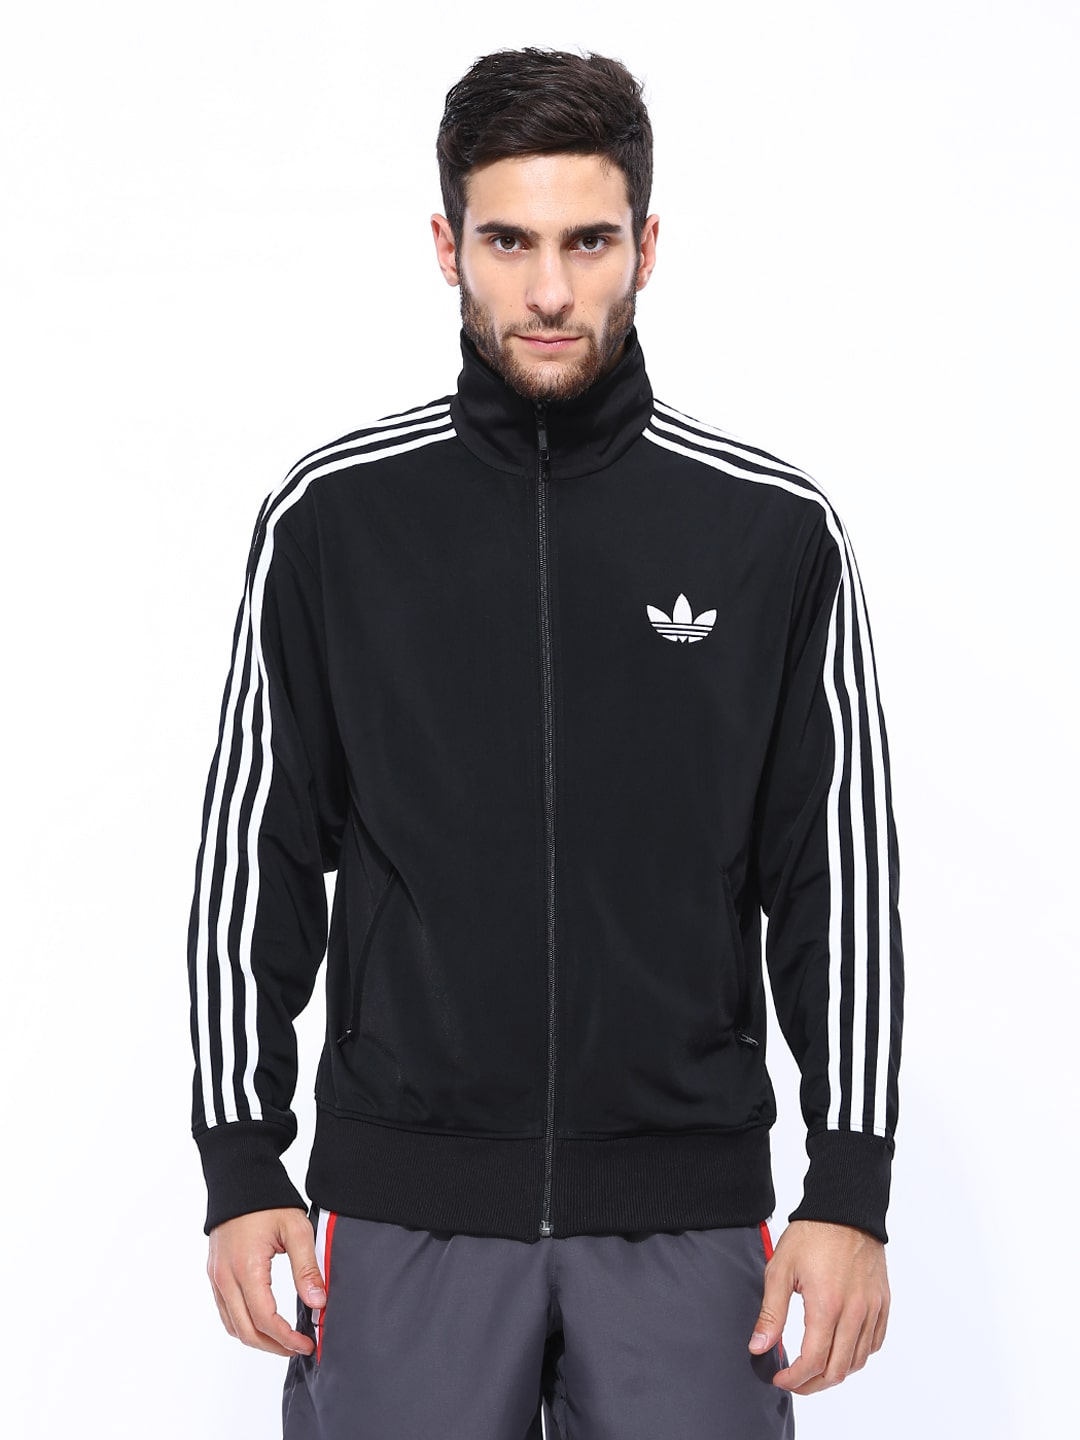 adidas jacket original price